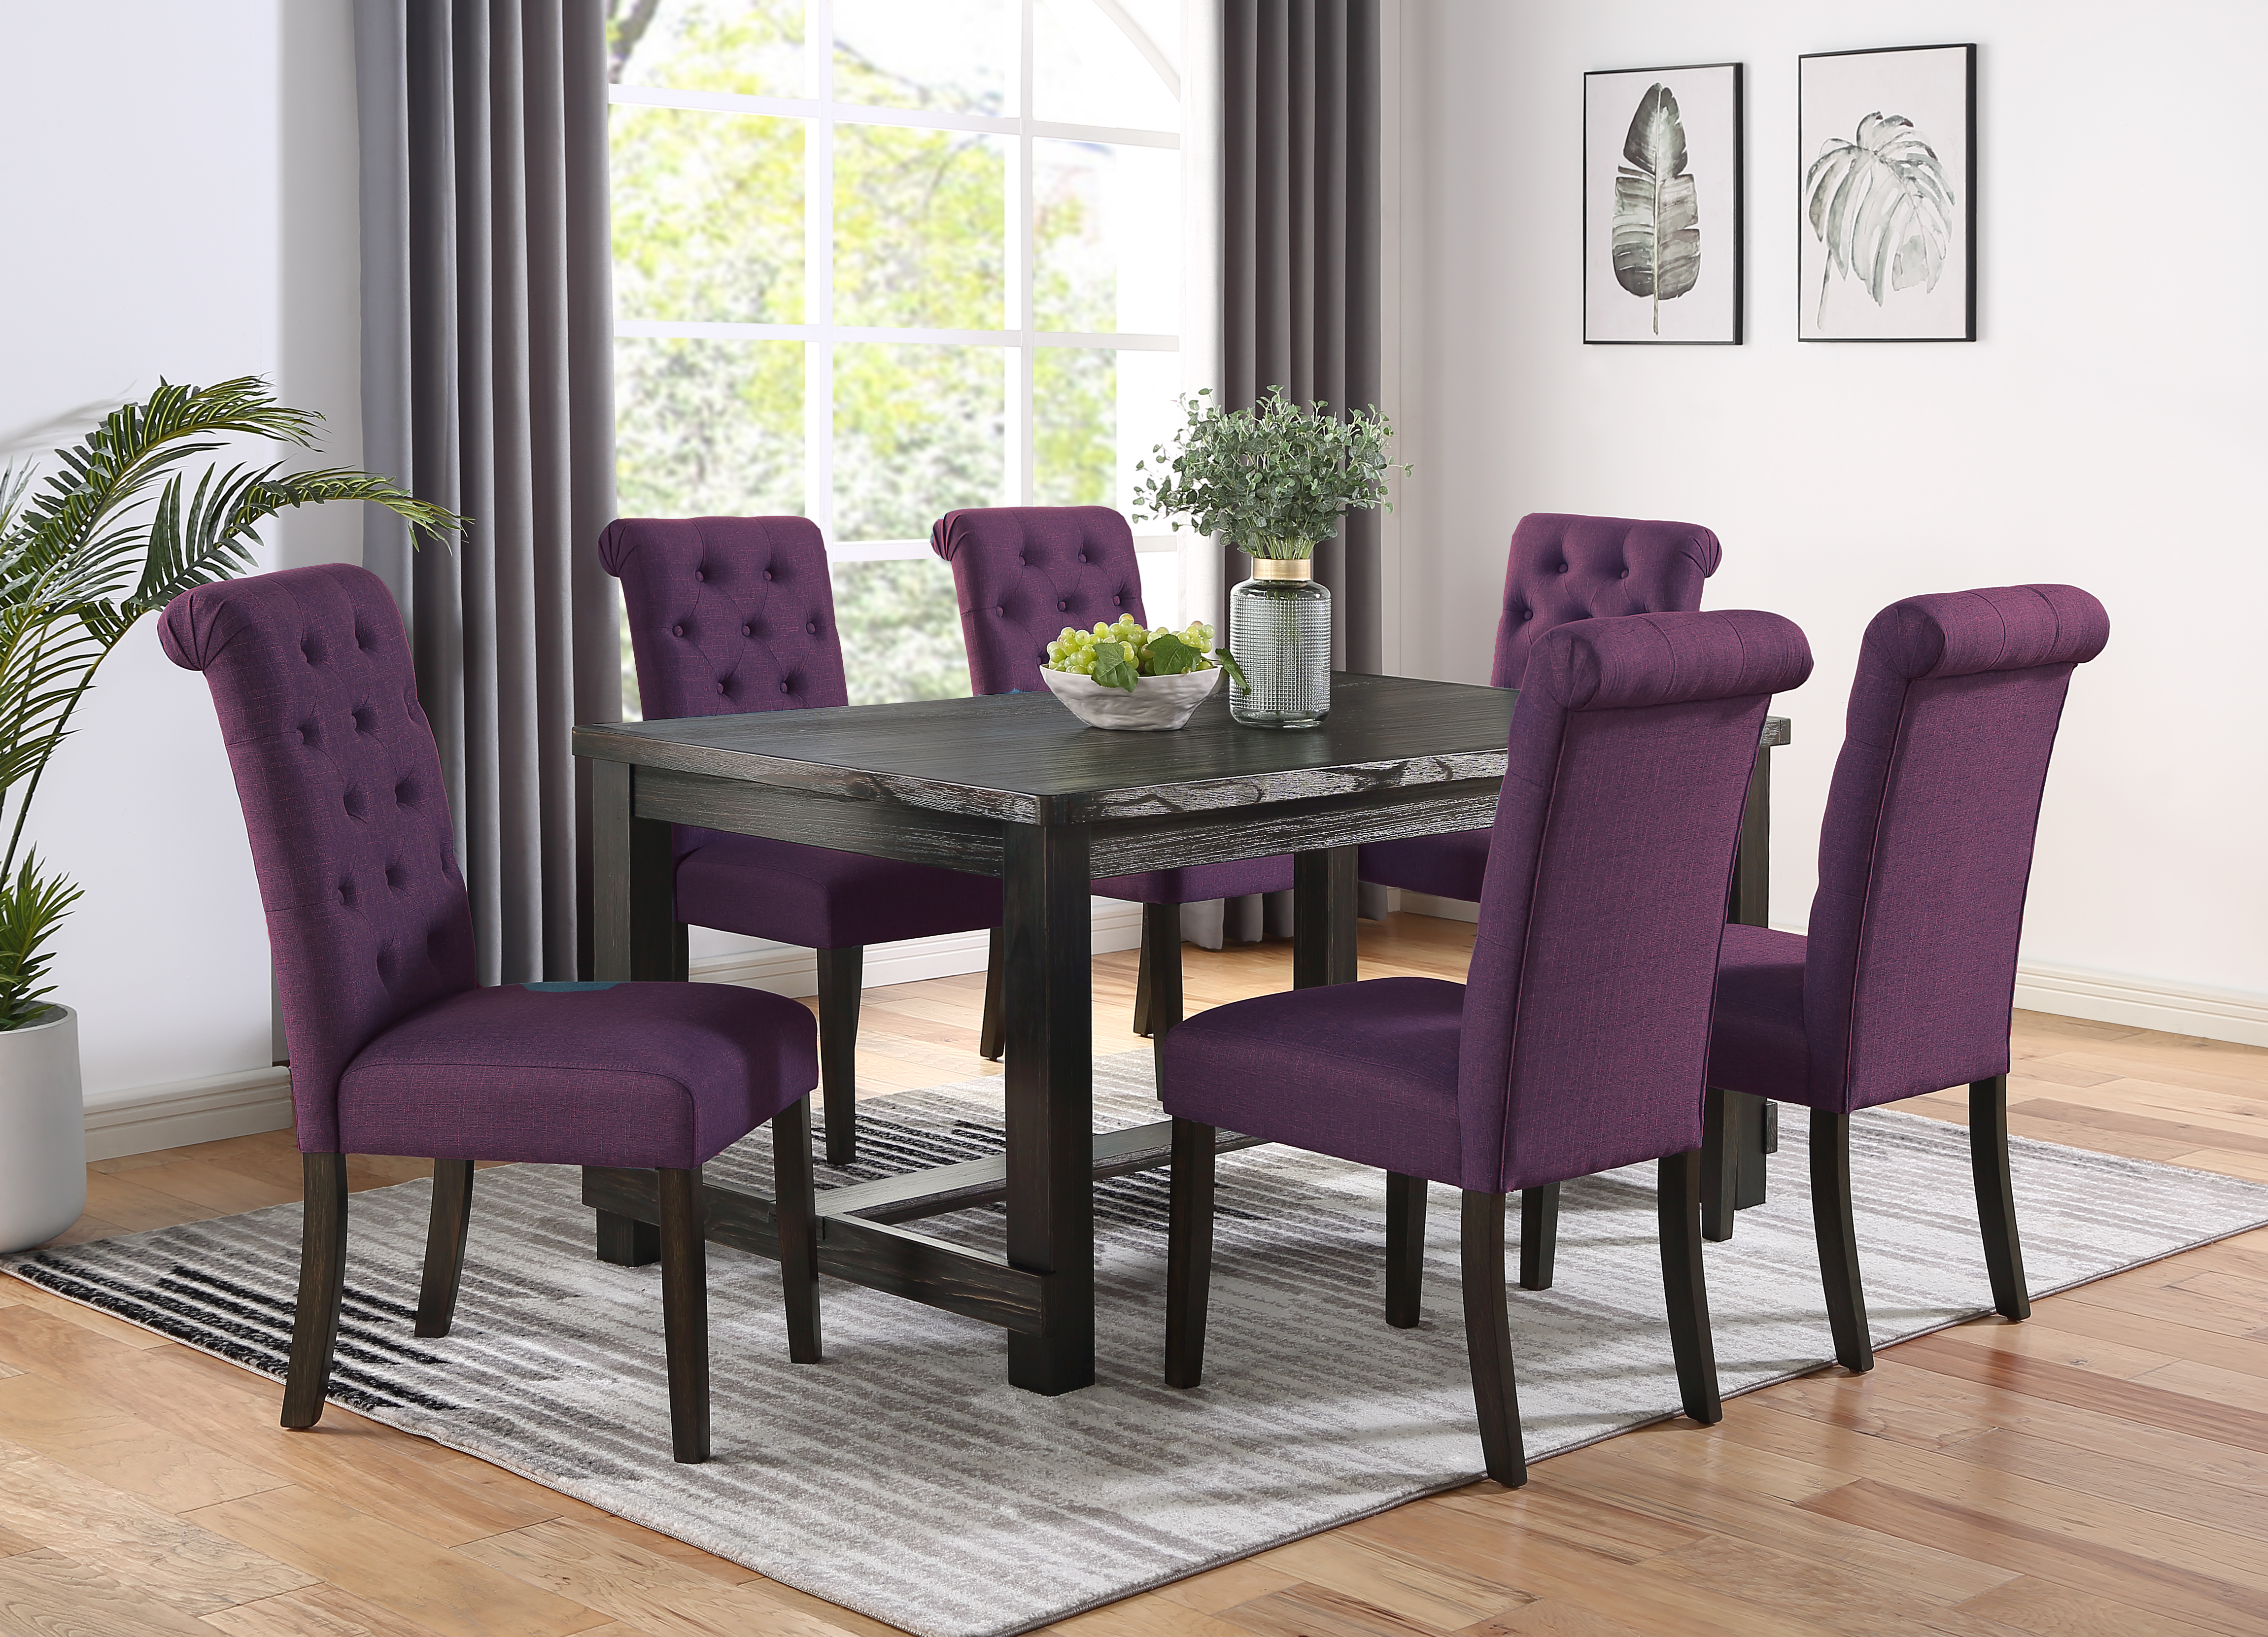 Leviton Antique Black Finished Wood Dining Set, Table with Six Chair